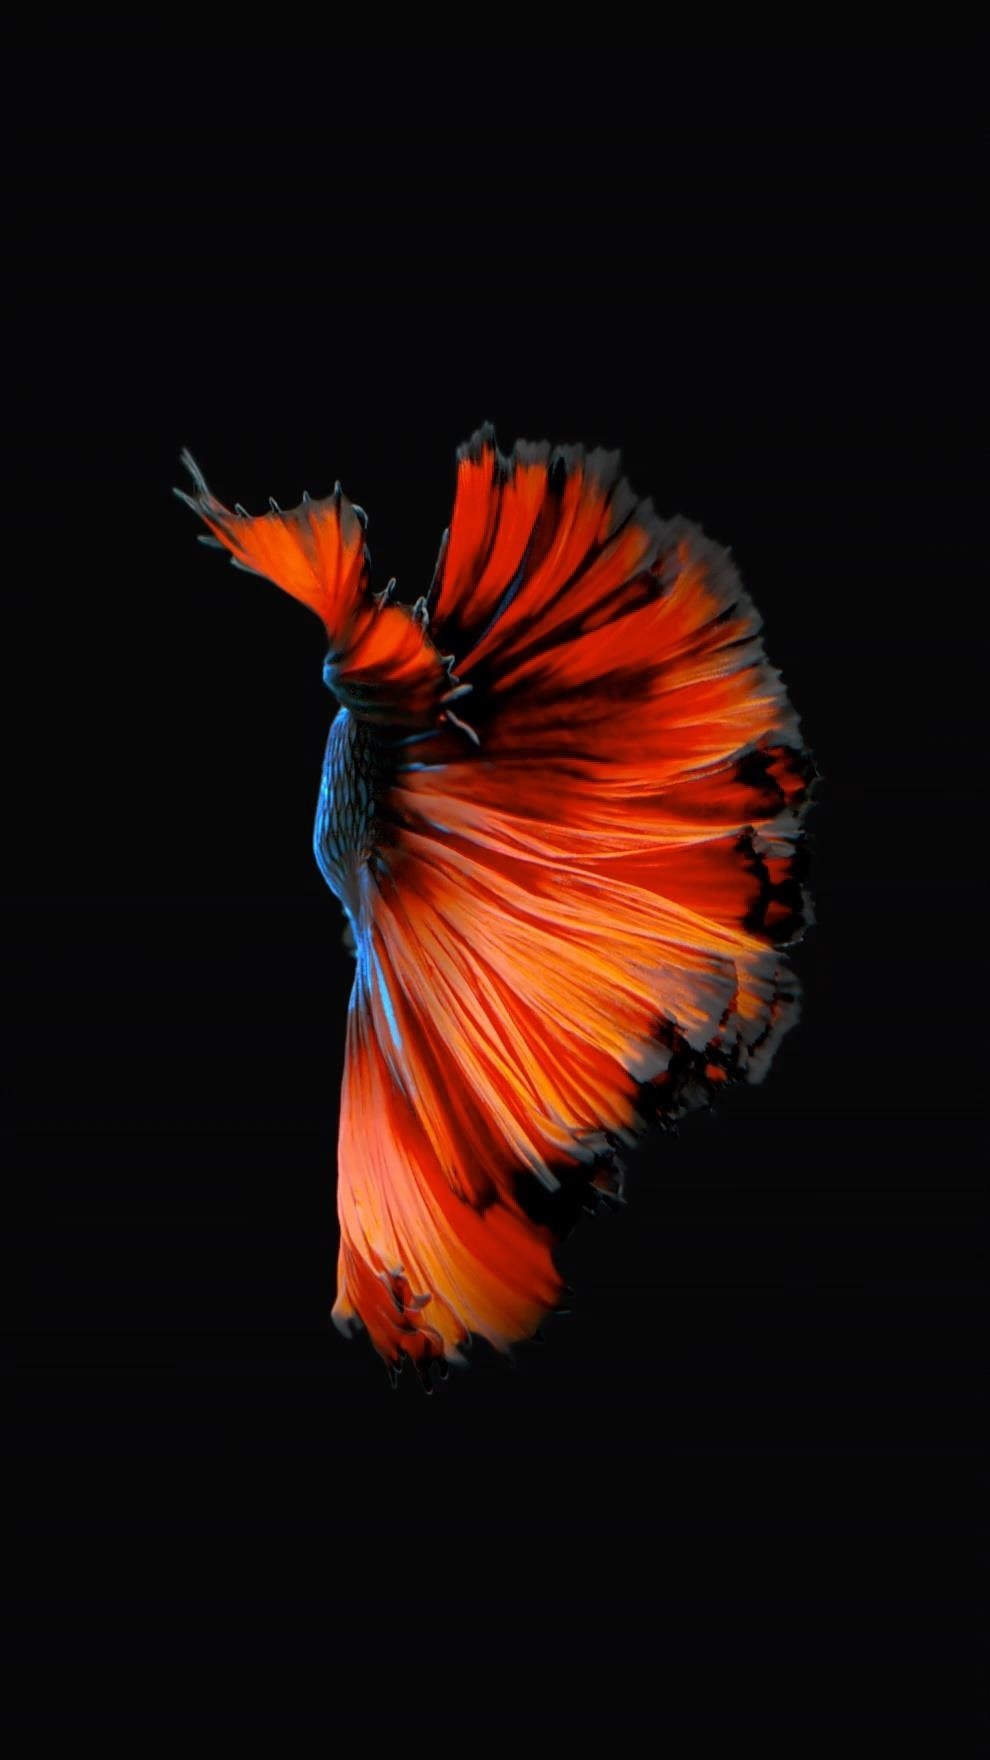 Sweet A Fishbowl How Long Do Fish Live Fish On Black Background How To Get Live Fish Wallpapers Back On Your Iphone Wild Ios How Long Do Fish Live houzz-02 How Long Do Fish Live